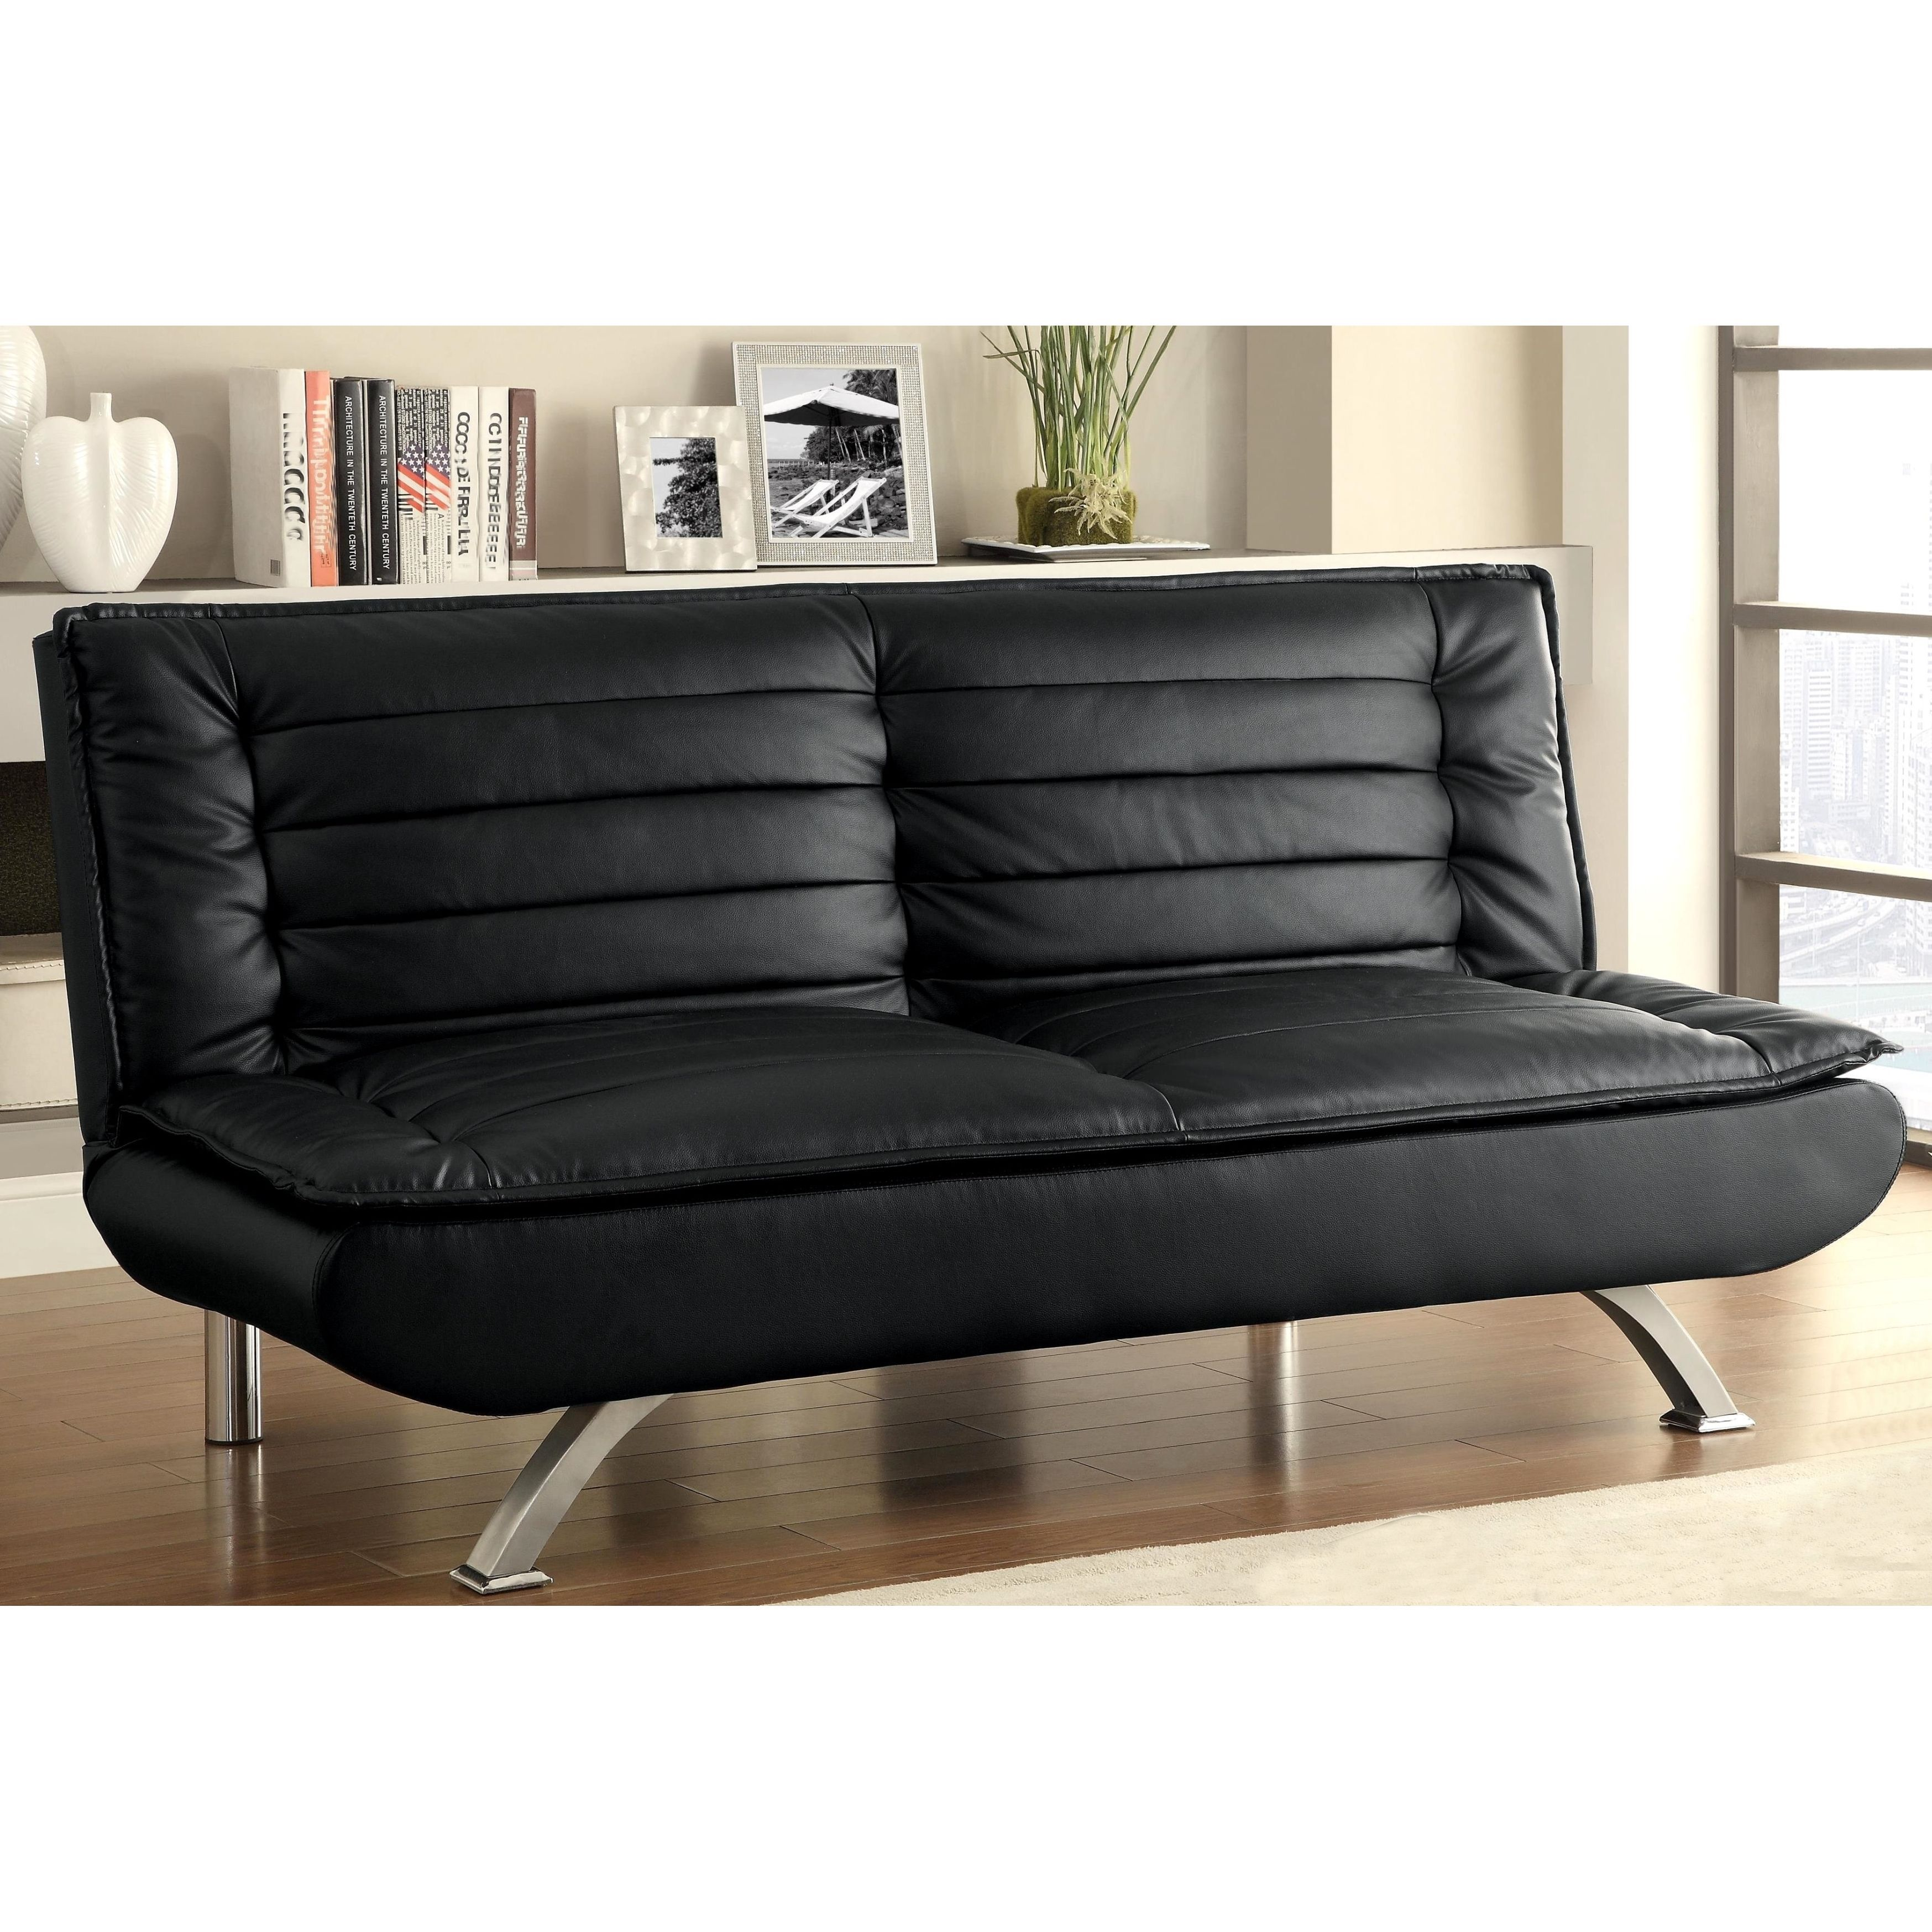 - Online Shopping - Bedding, Furniture, Electronics, Jewelry